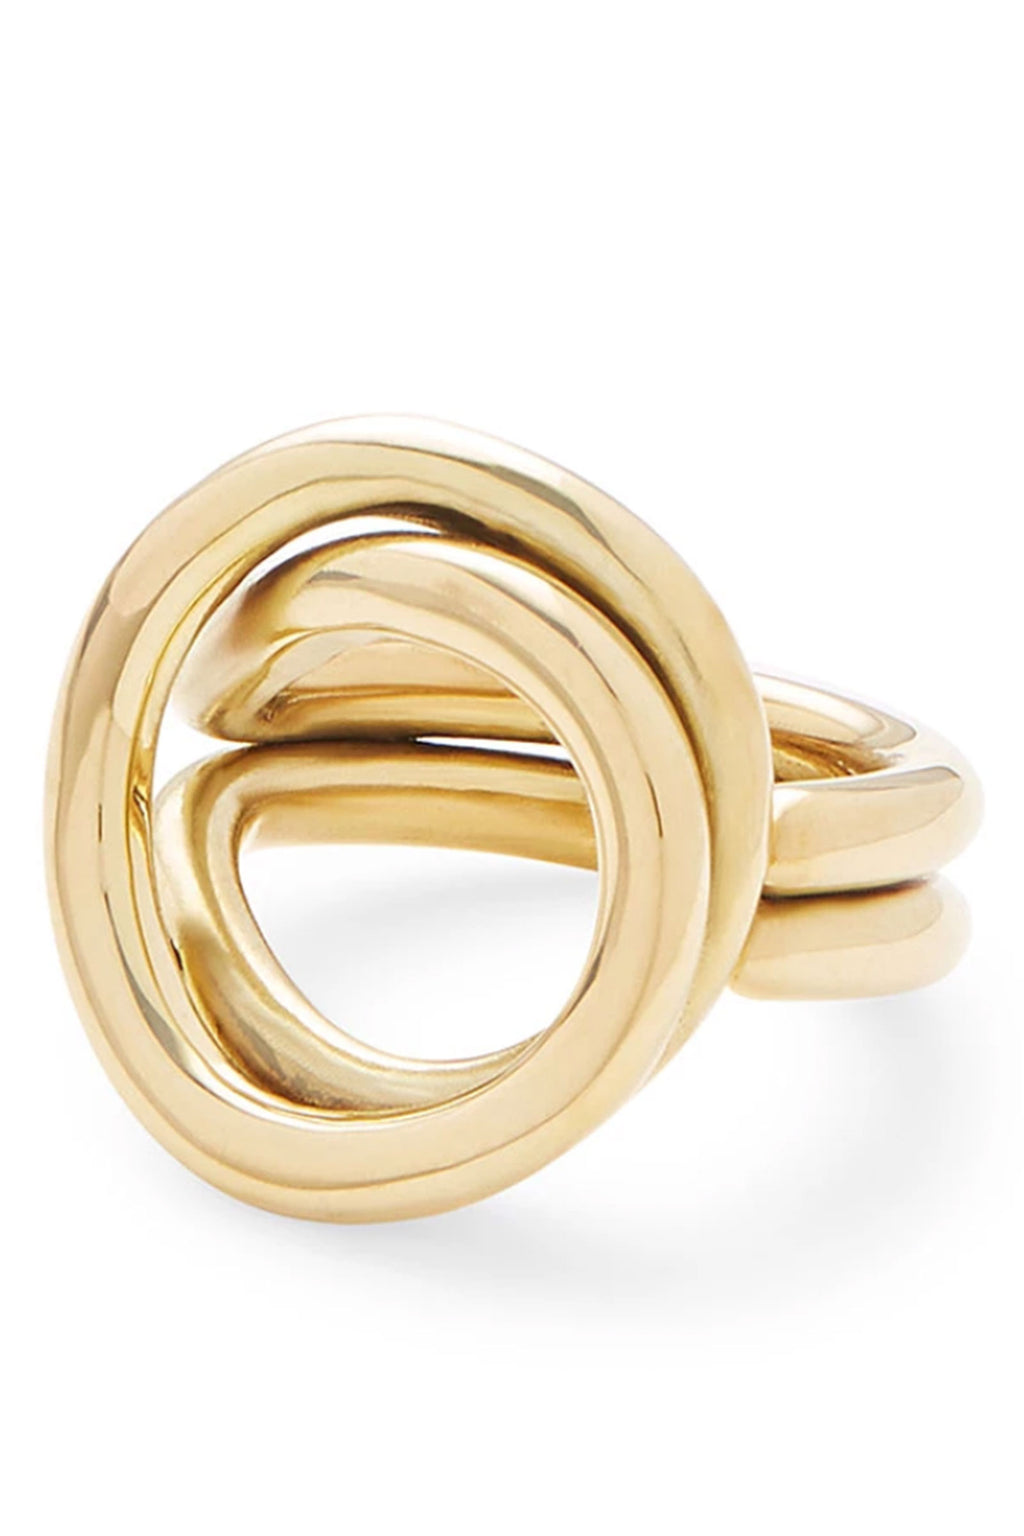 Soko Linea Ring in Brass